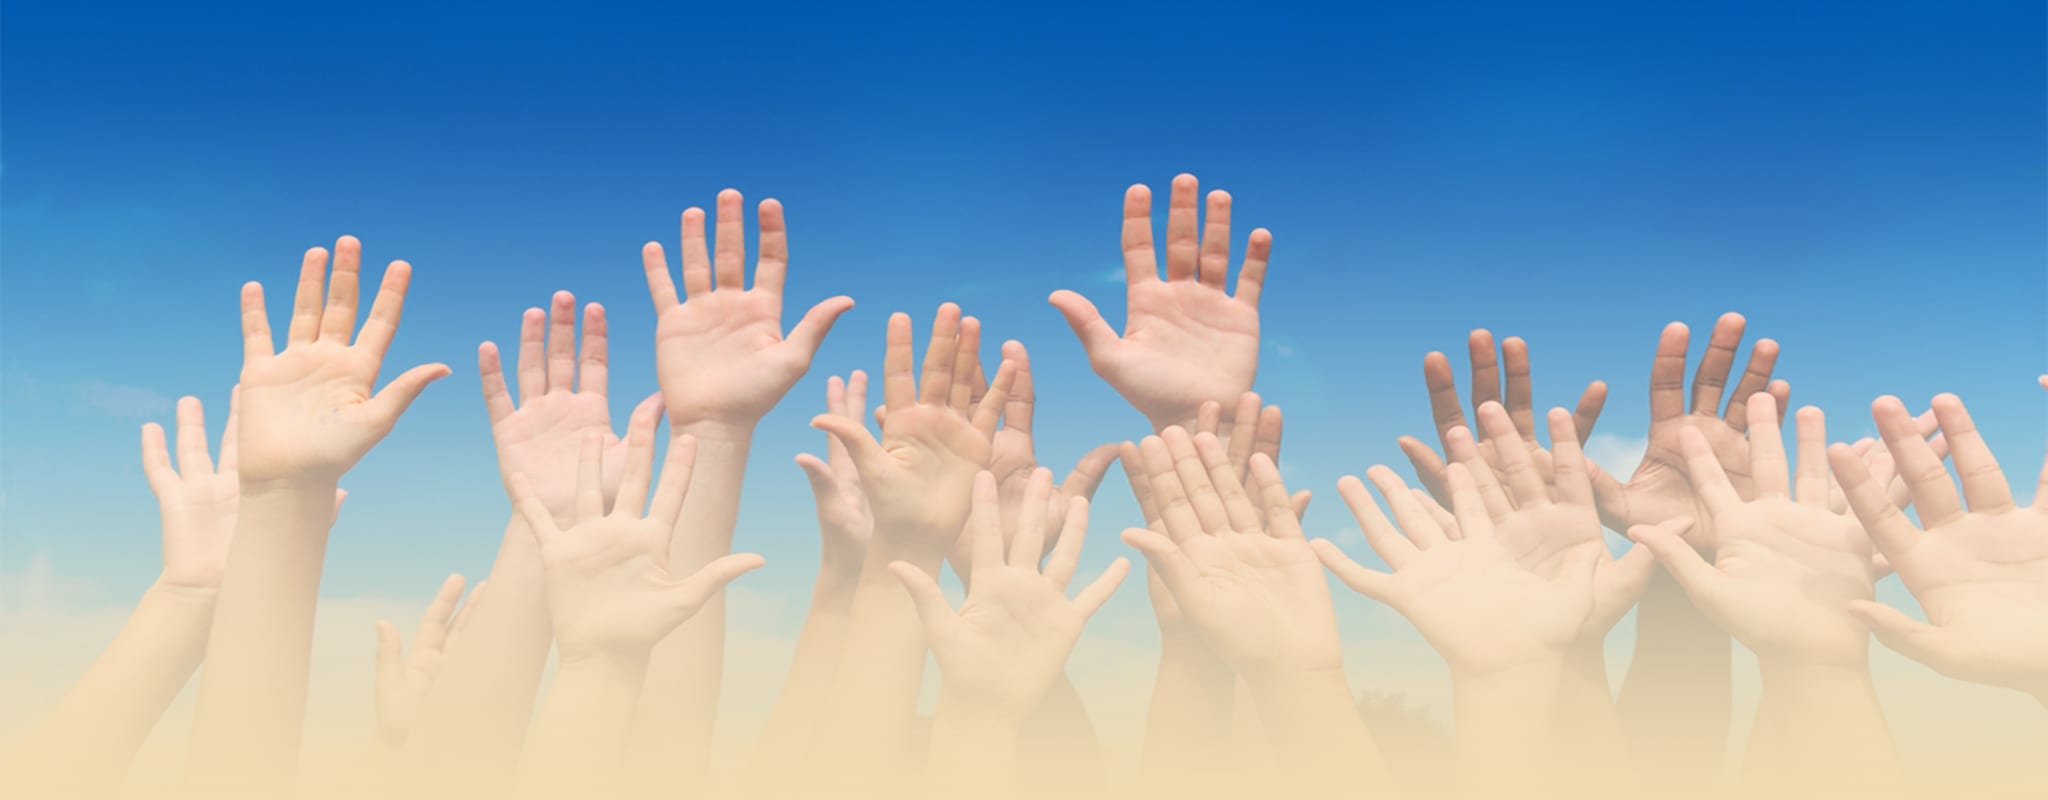 Helping Hands with Gradient Overlay